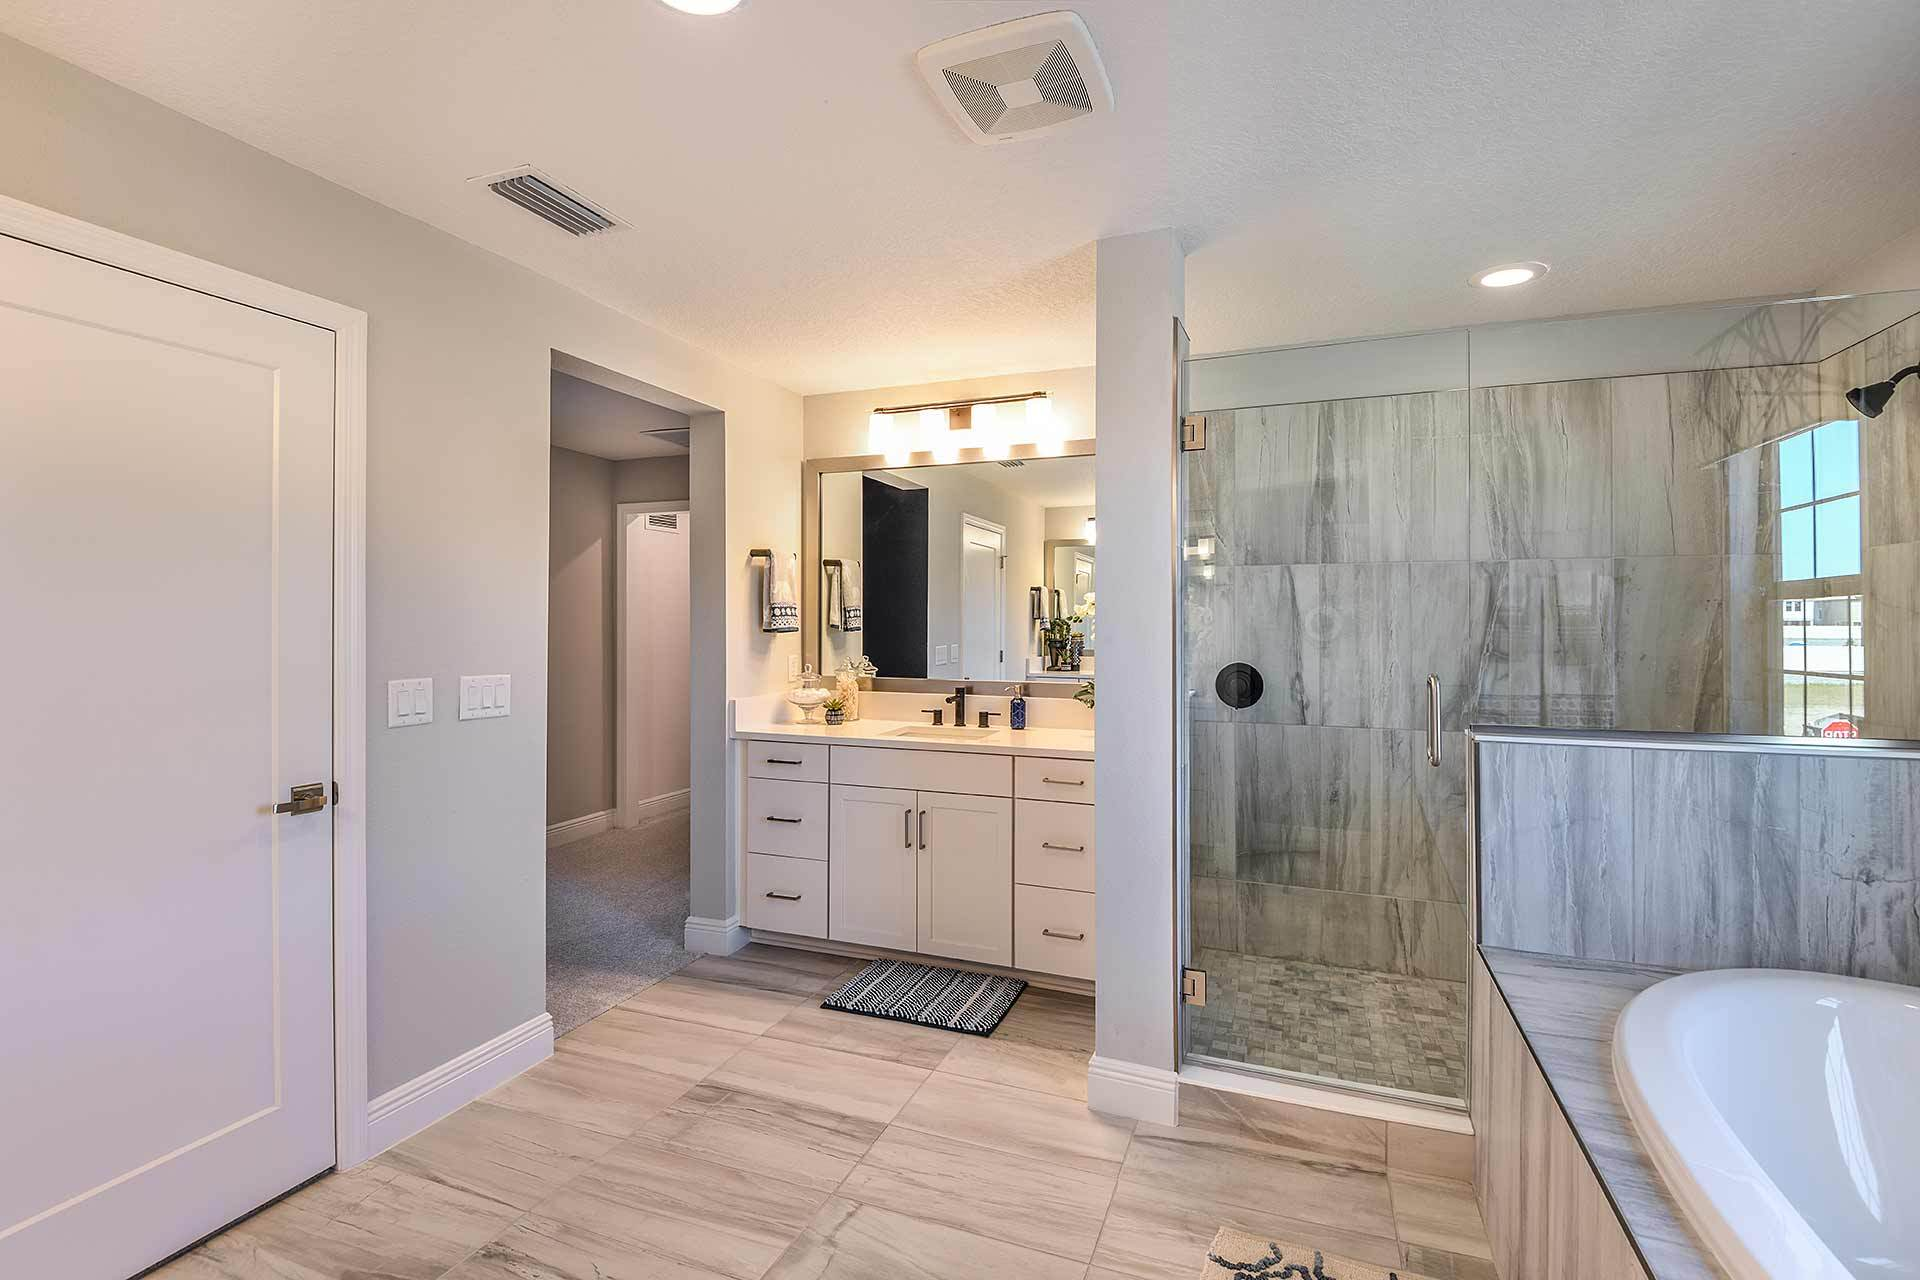 Bathroom featured in the Virginia Park By Homes by WestBay in Sarasota-Bradenton, FL